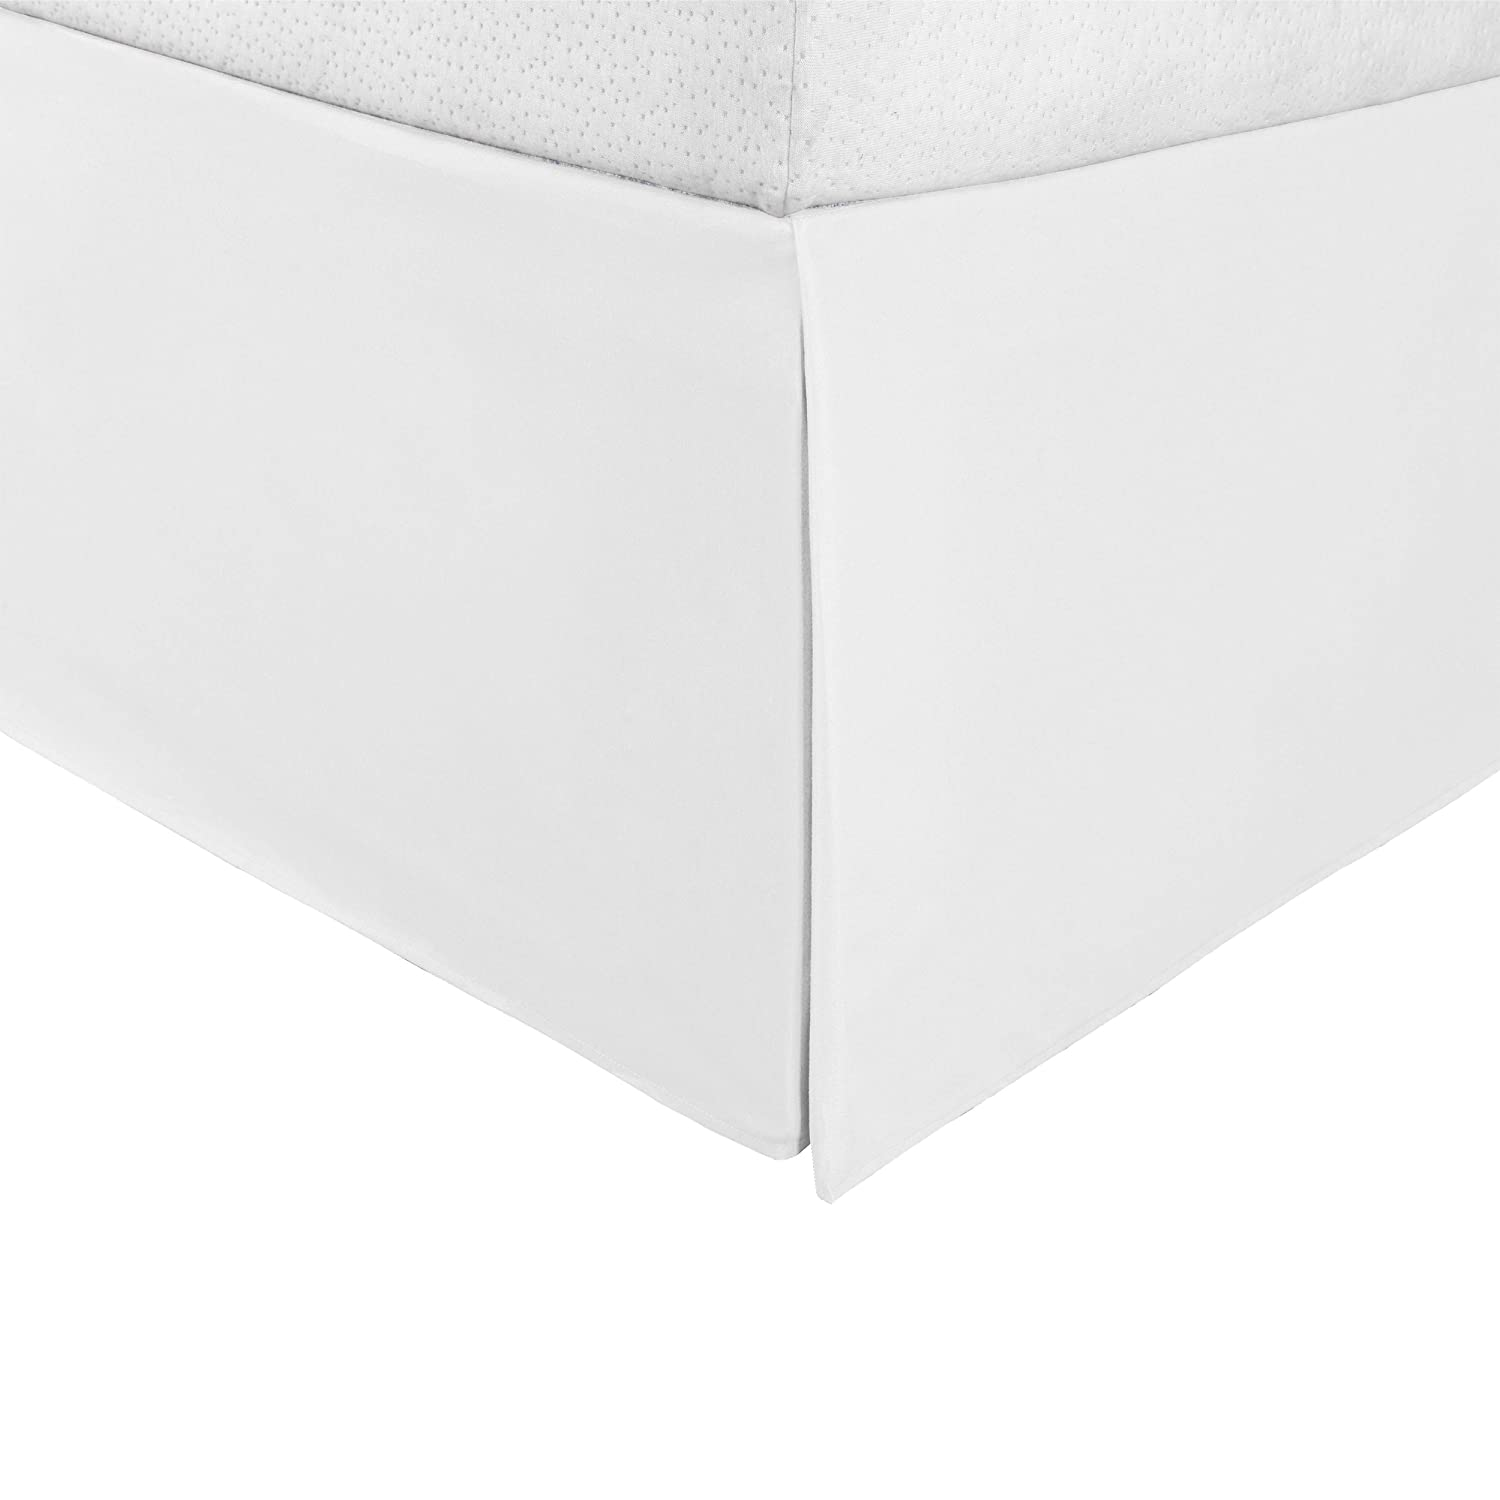 "Queen Bedskirt, White Superior Infinity Luxury Soft 100% Brushed Microfiber Tailored Bed Skirt with 15"" Drop"